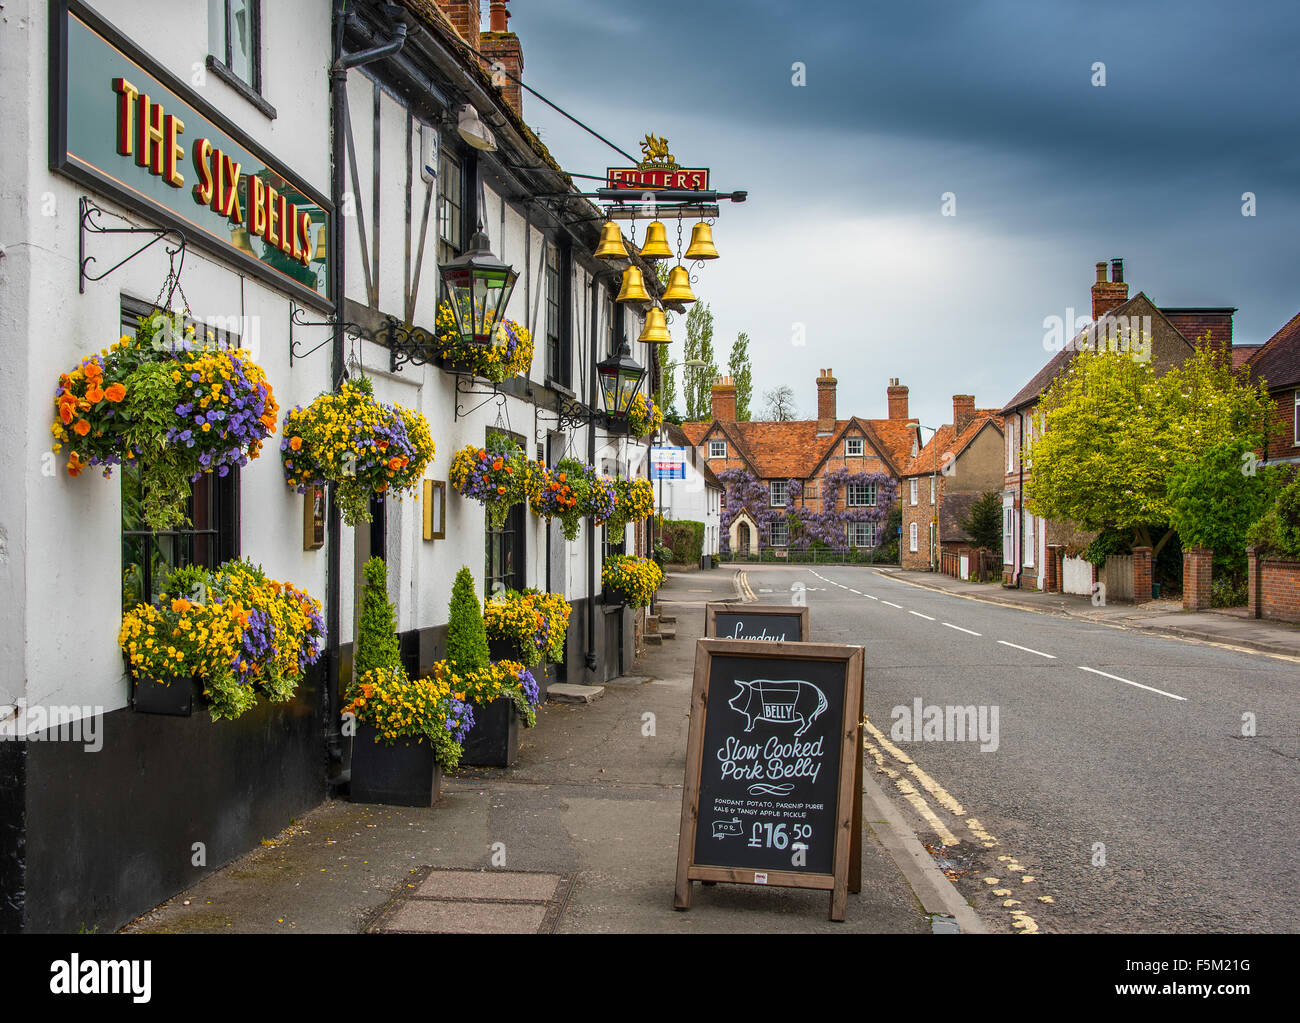 The Six Bells - Stock Image